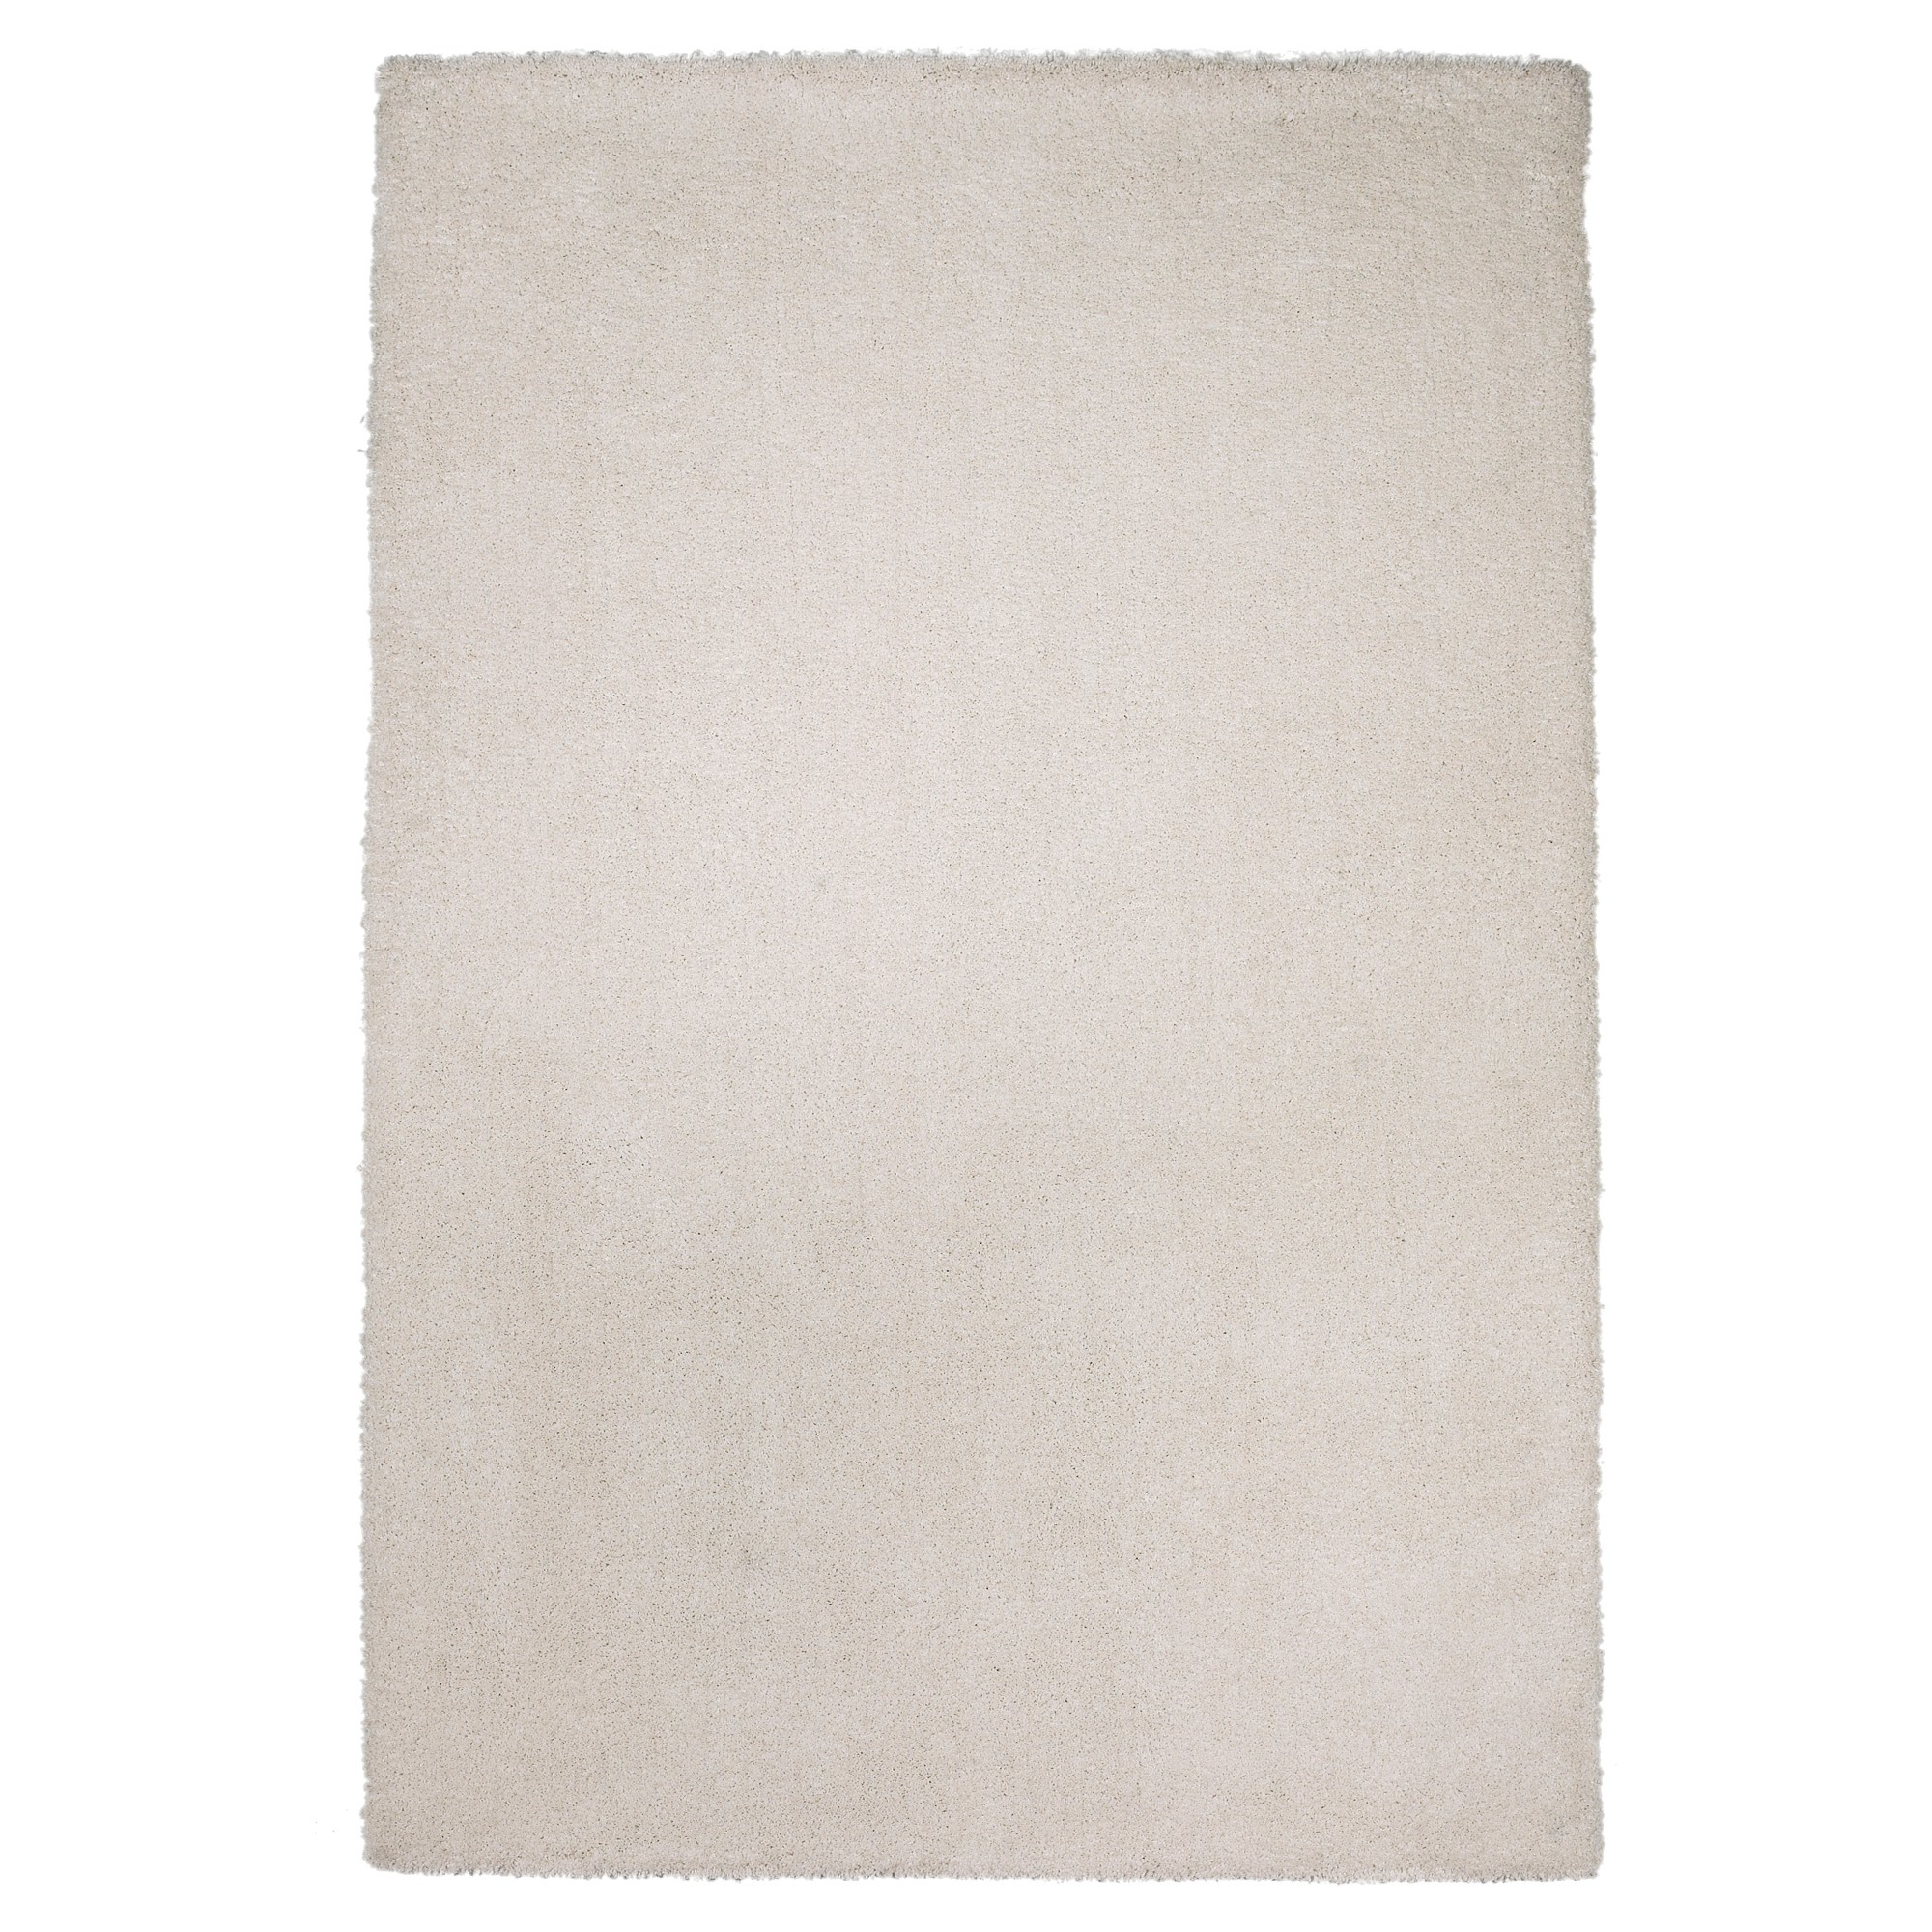 Ivory Solid Woven Area Rug 8'x11' - Kas Rugs, White